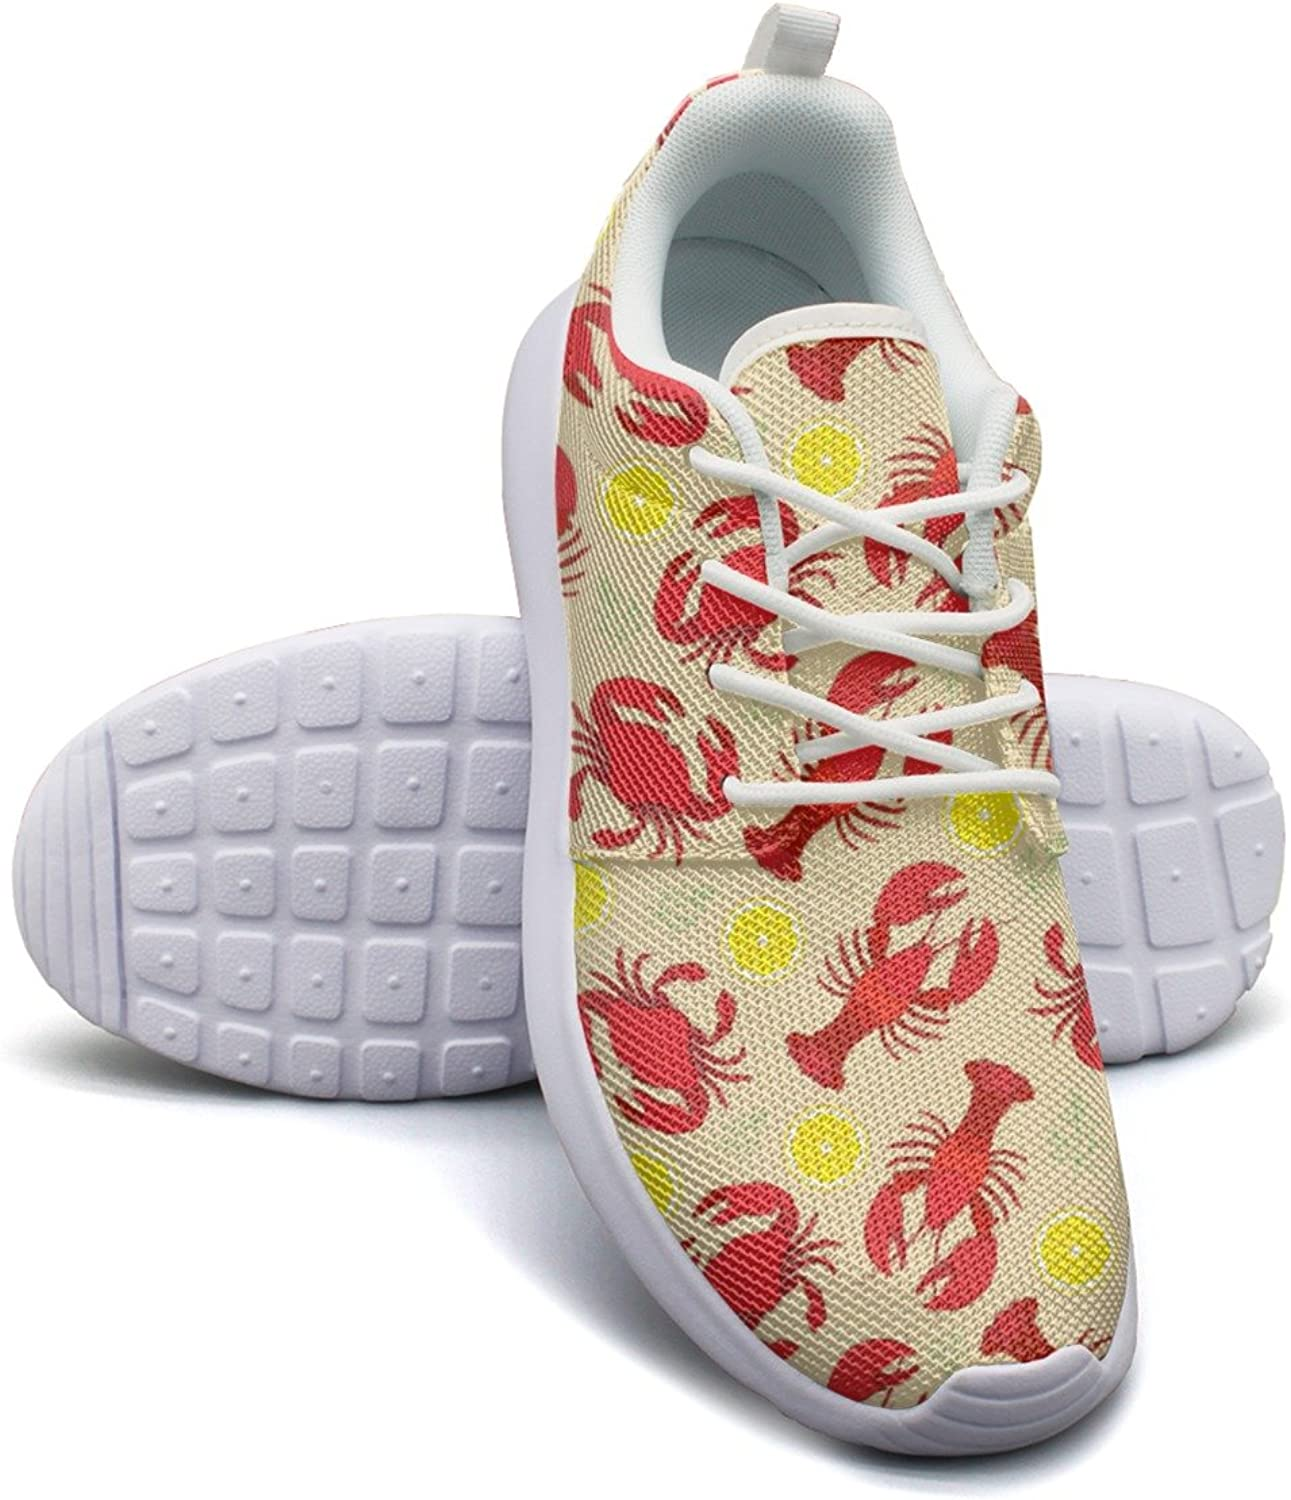 Lobster and Crab with Lemon Fruit Women's Lightweight Mesh Basketball Sneakers Trendy Sports shoes